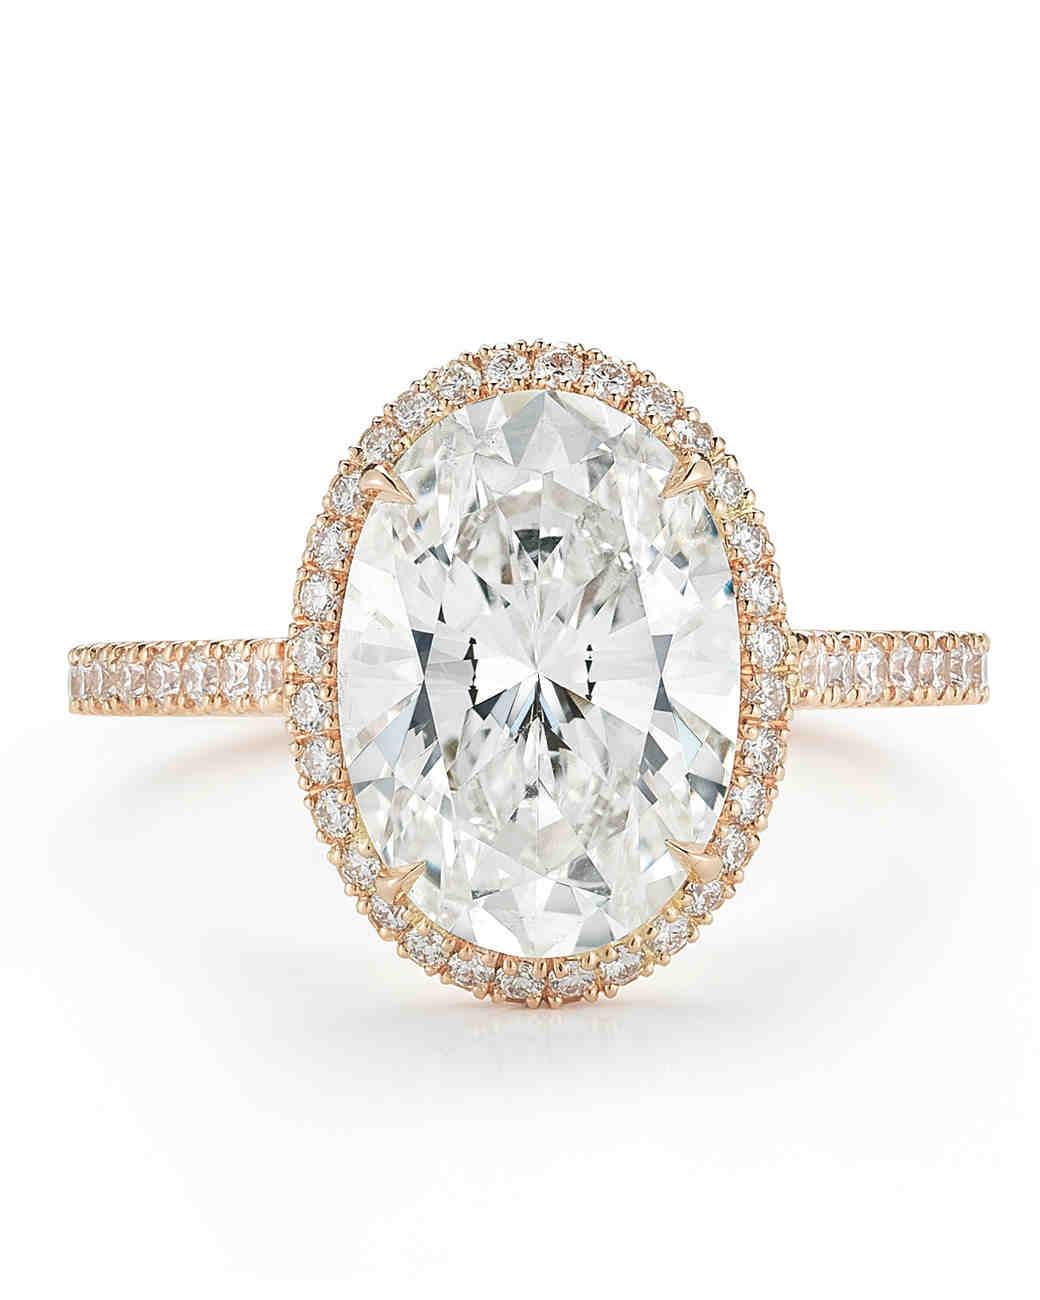 oval engagement rings for the bride to be martha stewart weddings - Oval Wedding Rings